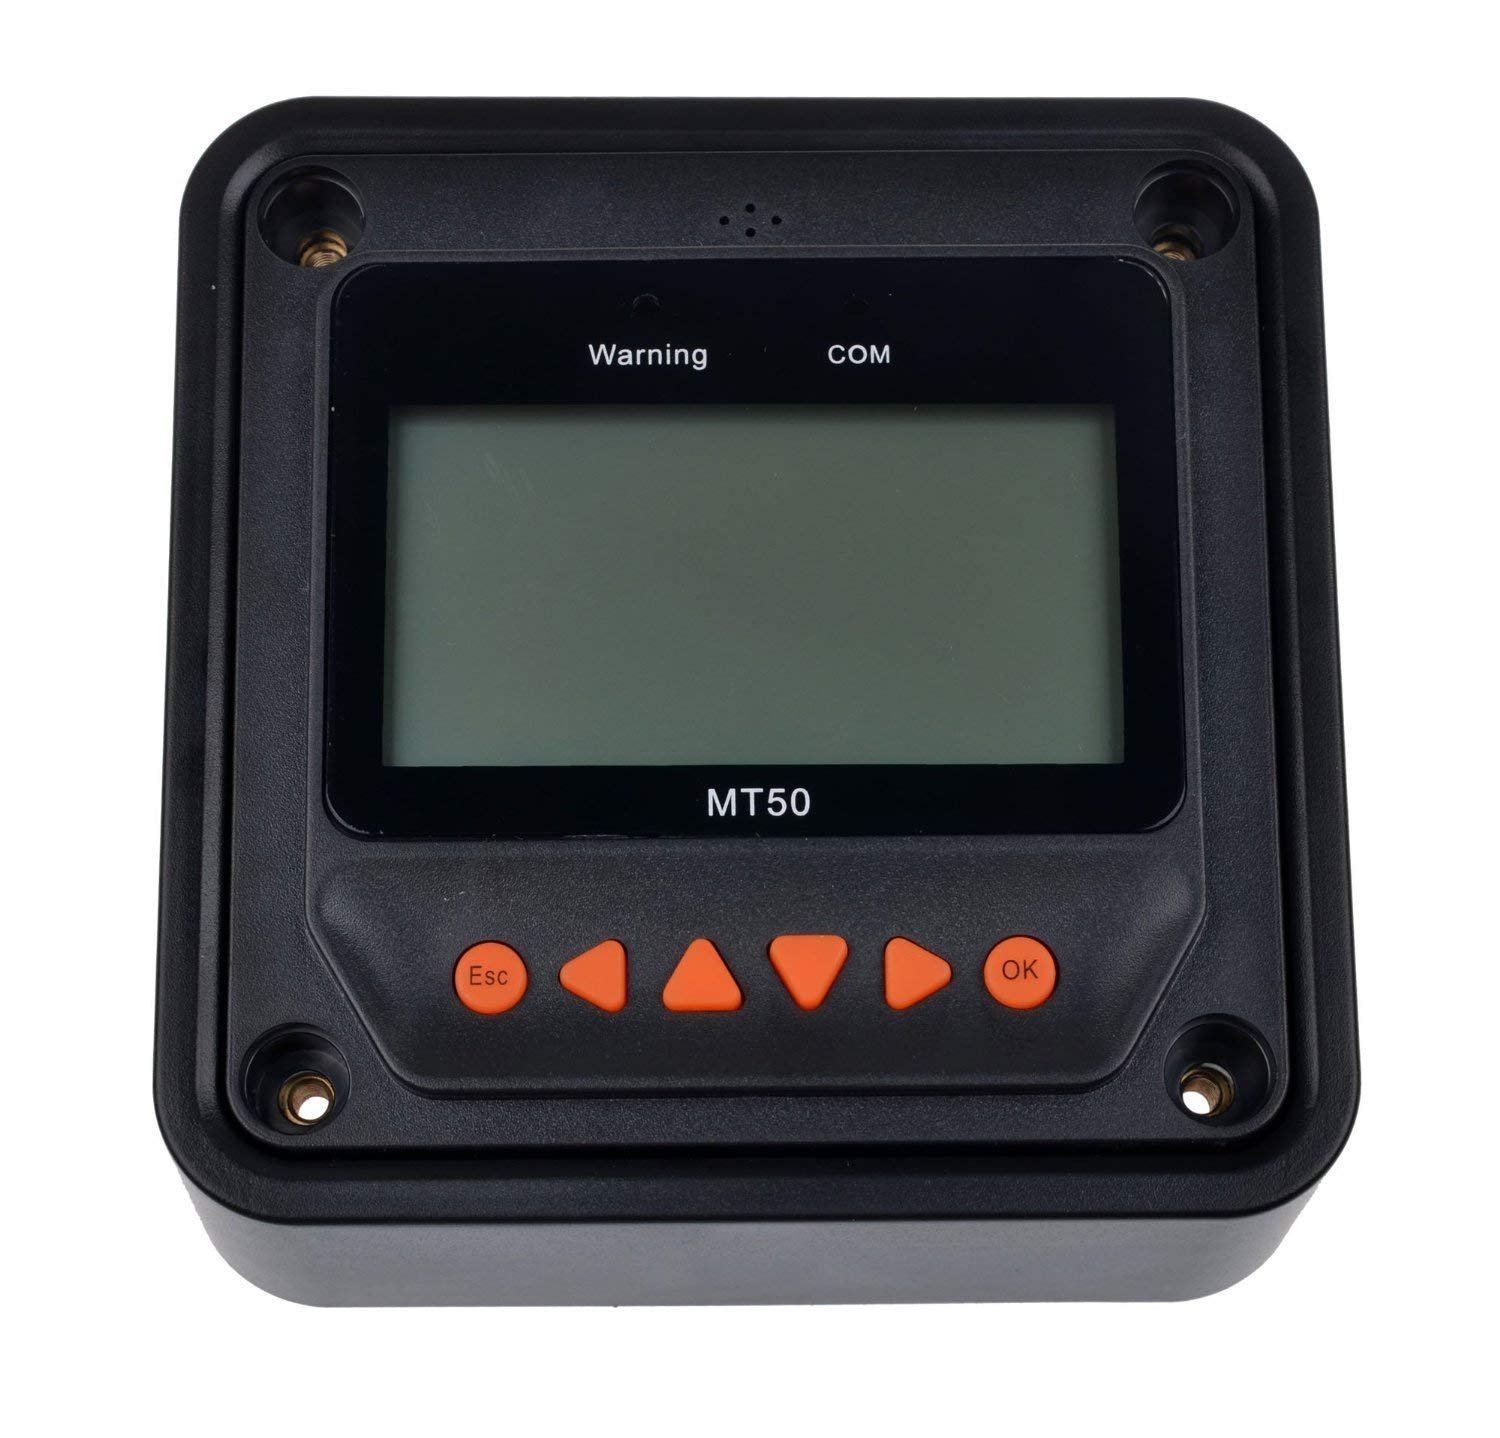 EPever 40A MPPT Solar Charge Controller Tracer A 4210A + Remote Meter MT-50 Solar Charge With LCD Display for solar Battery Charging by EPEVER (Image #4)